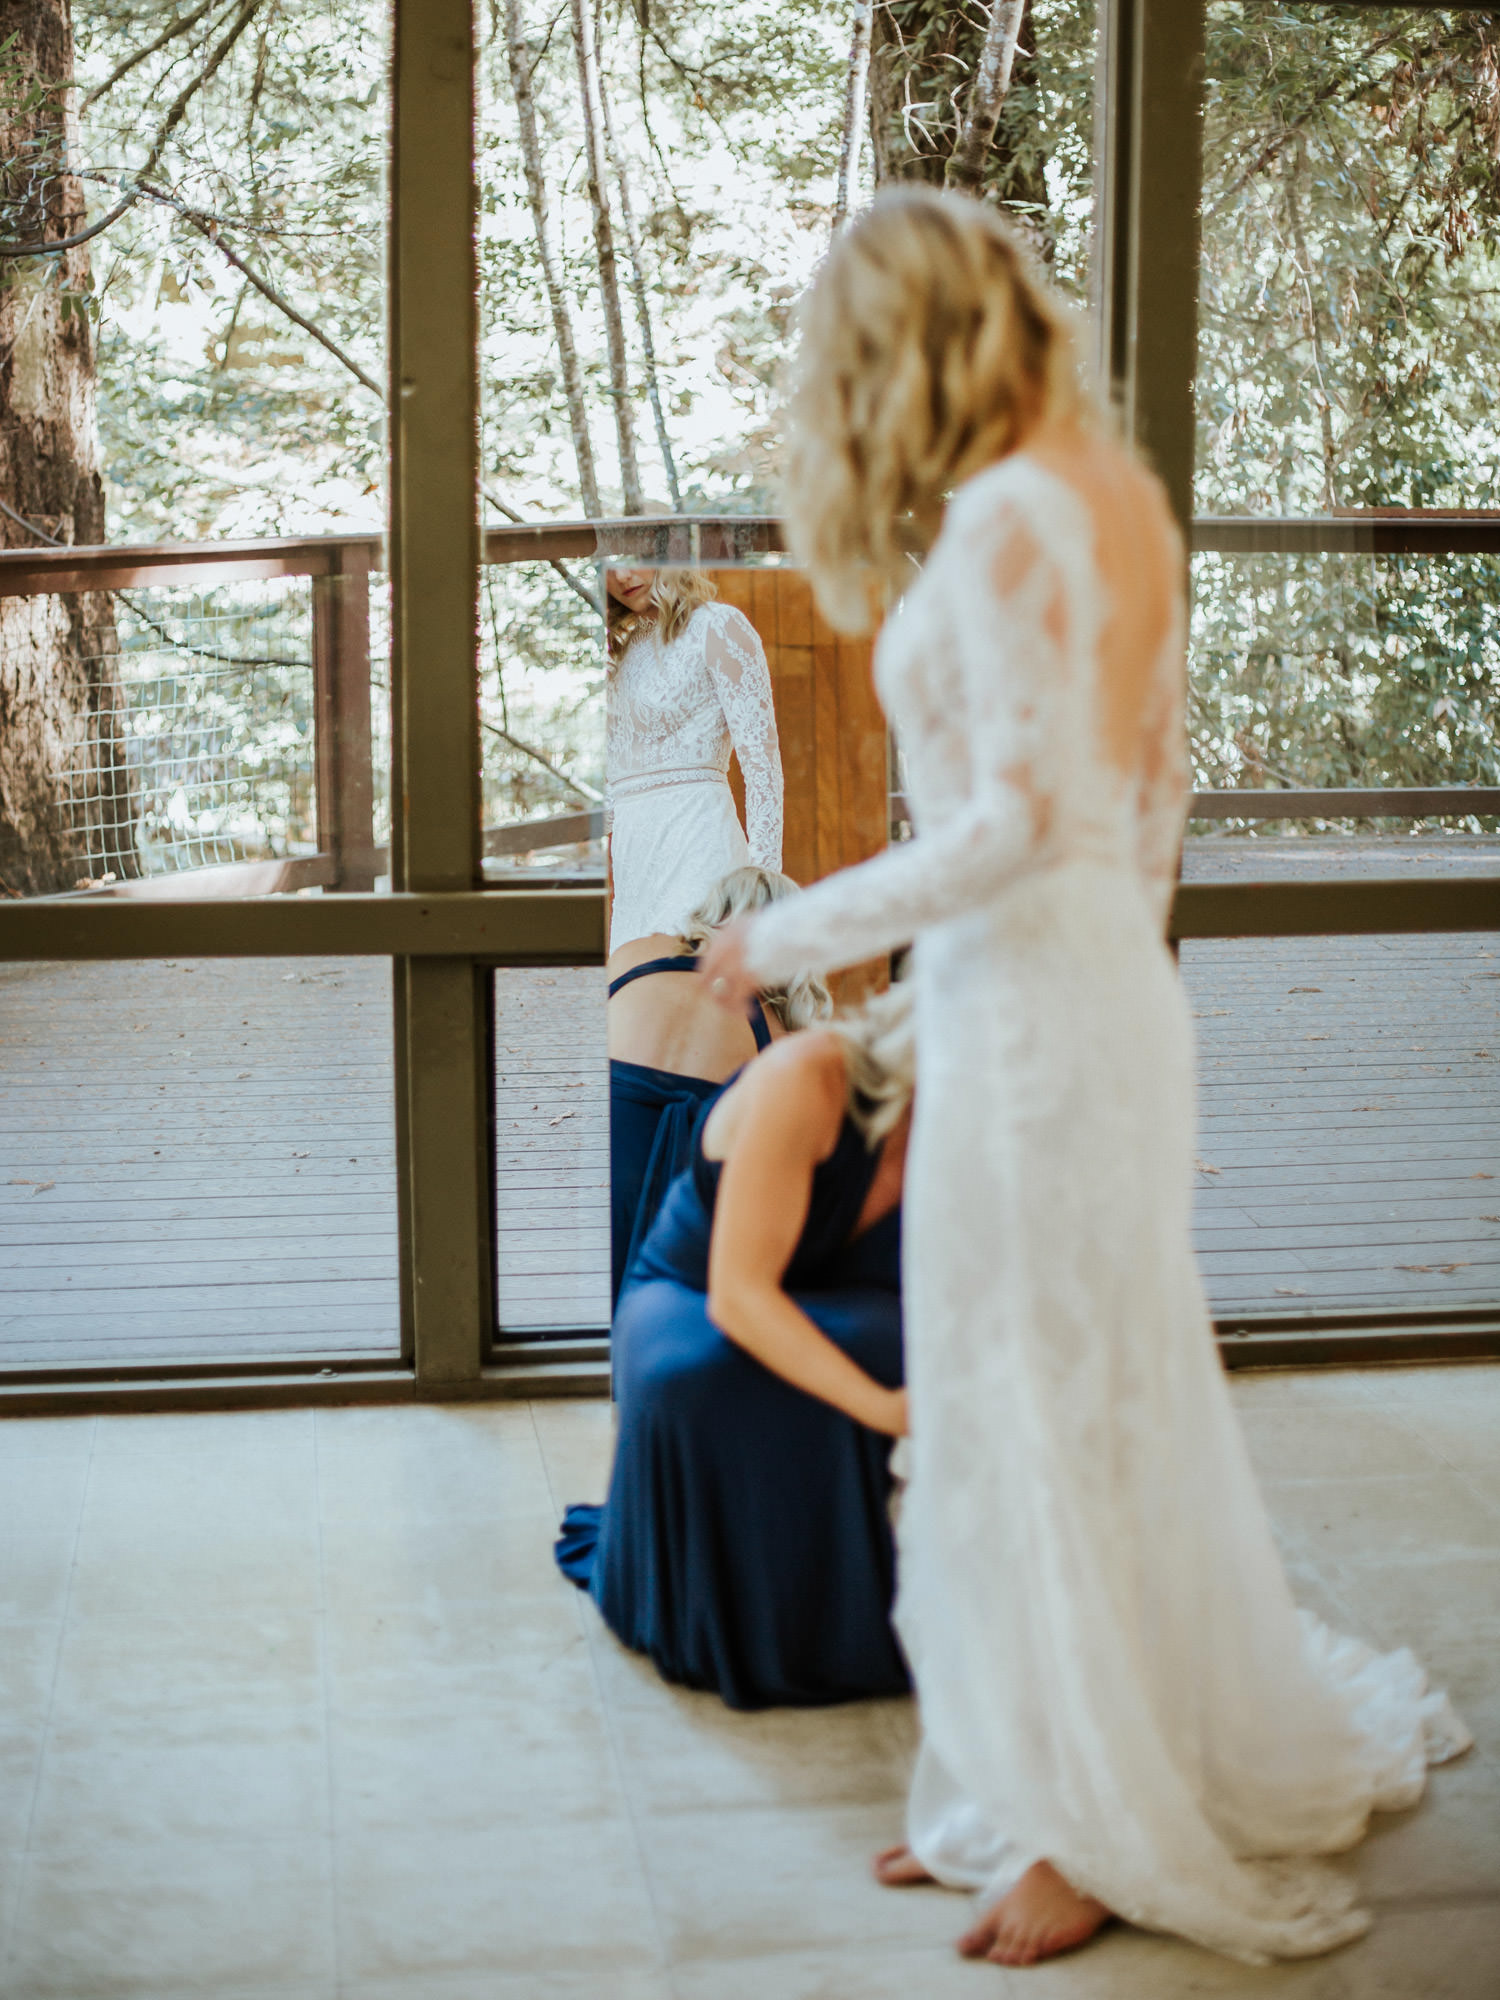 bridemaid helping the bride with the wedding dress at camp campbell wedding in California